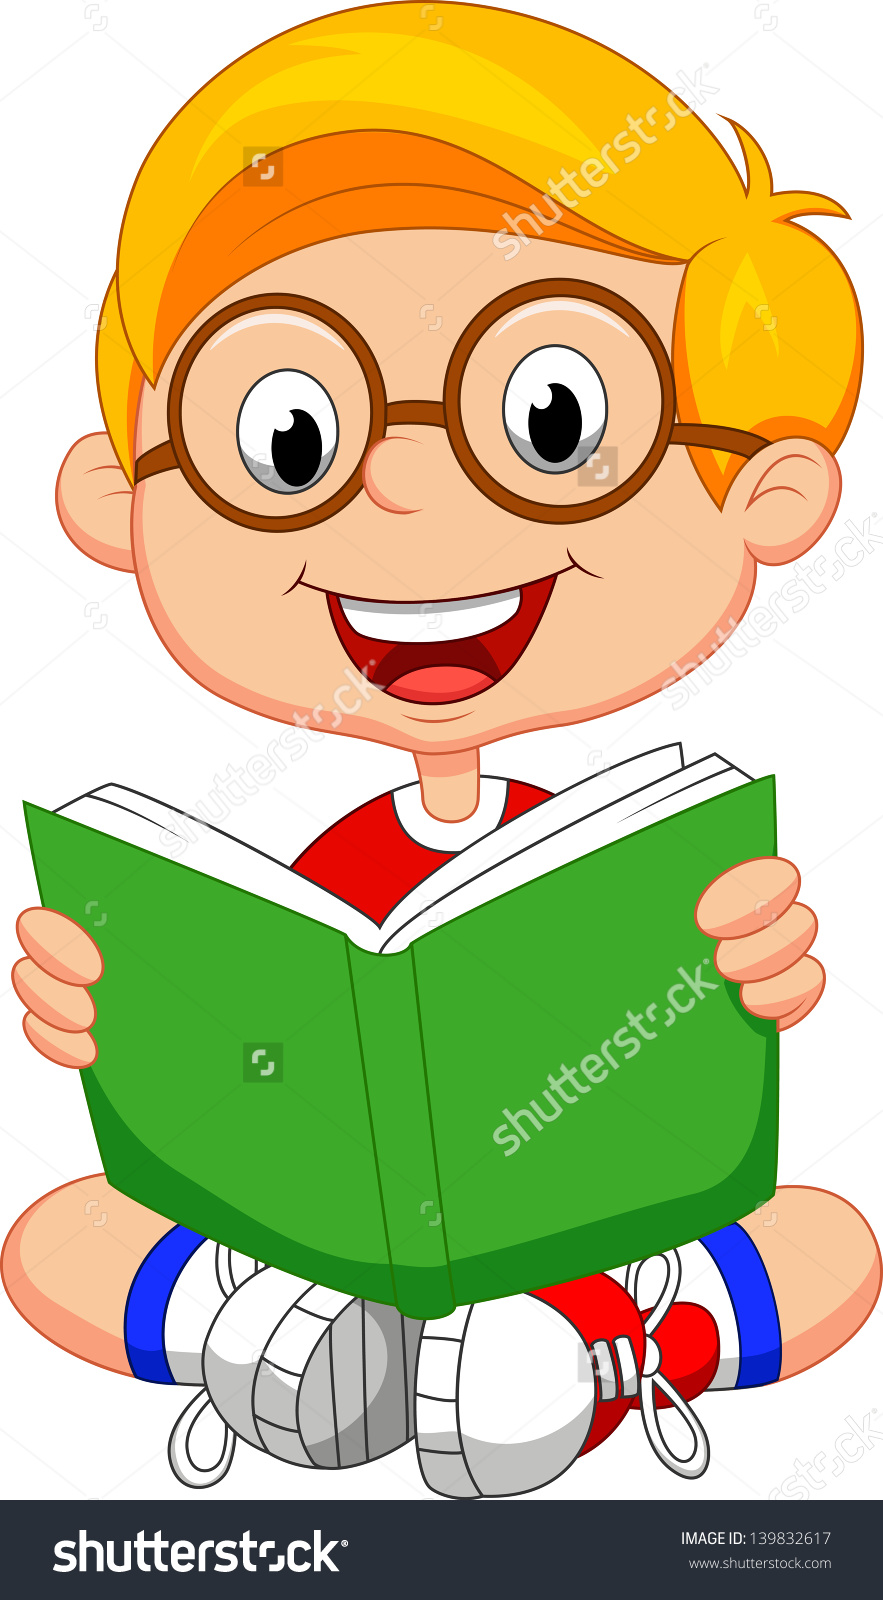 Reading a book in bed clipart picture library stock Reading a book in bed clipart - ClipartFox picture library stock